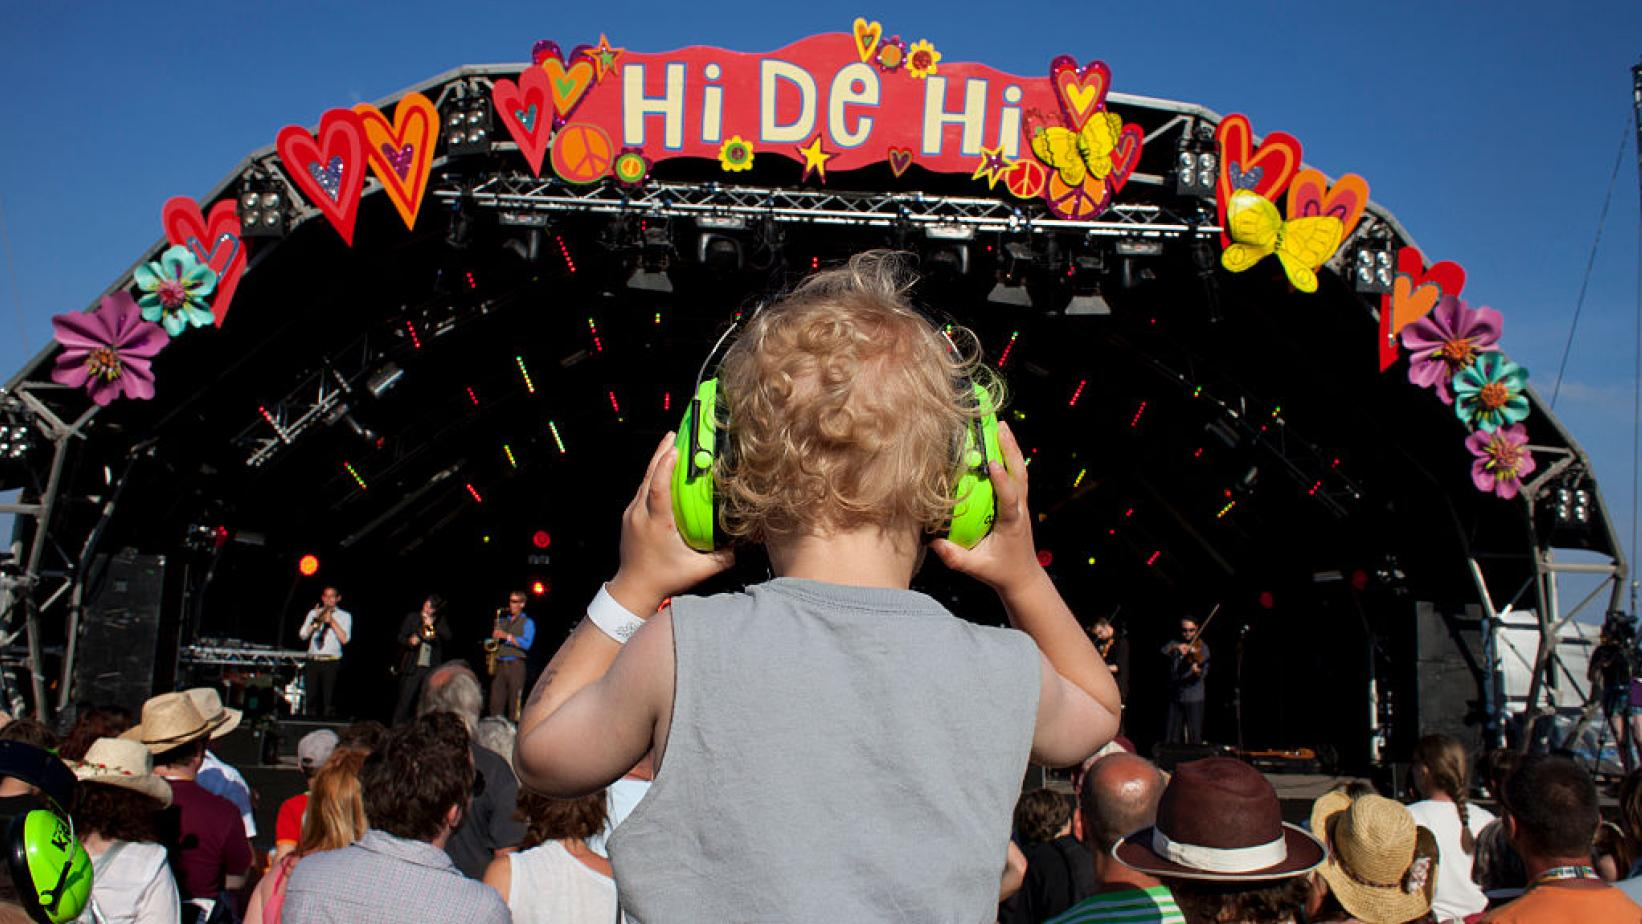 hearing protection at a festival